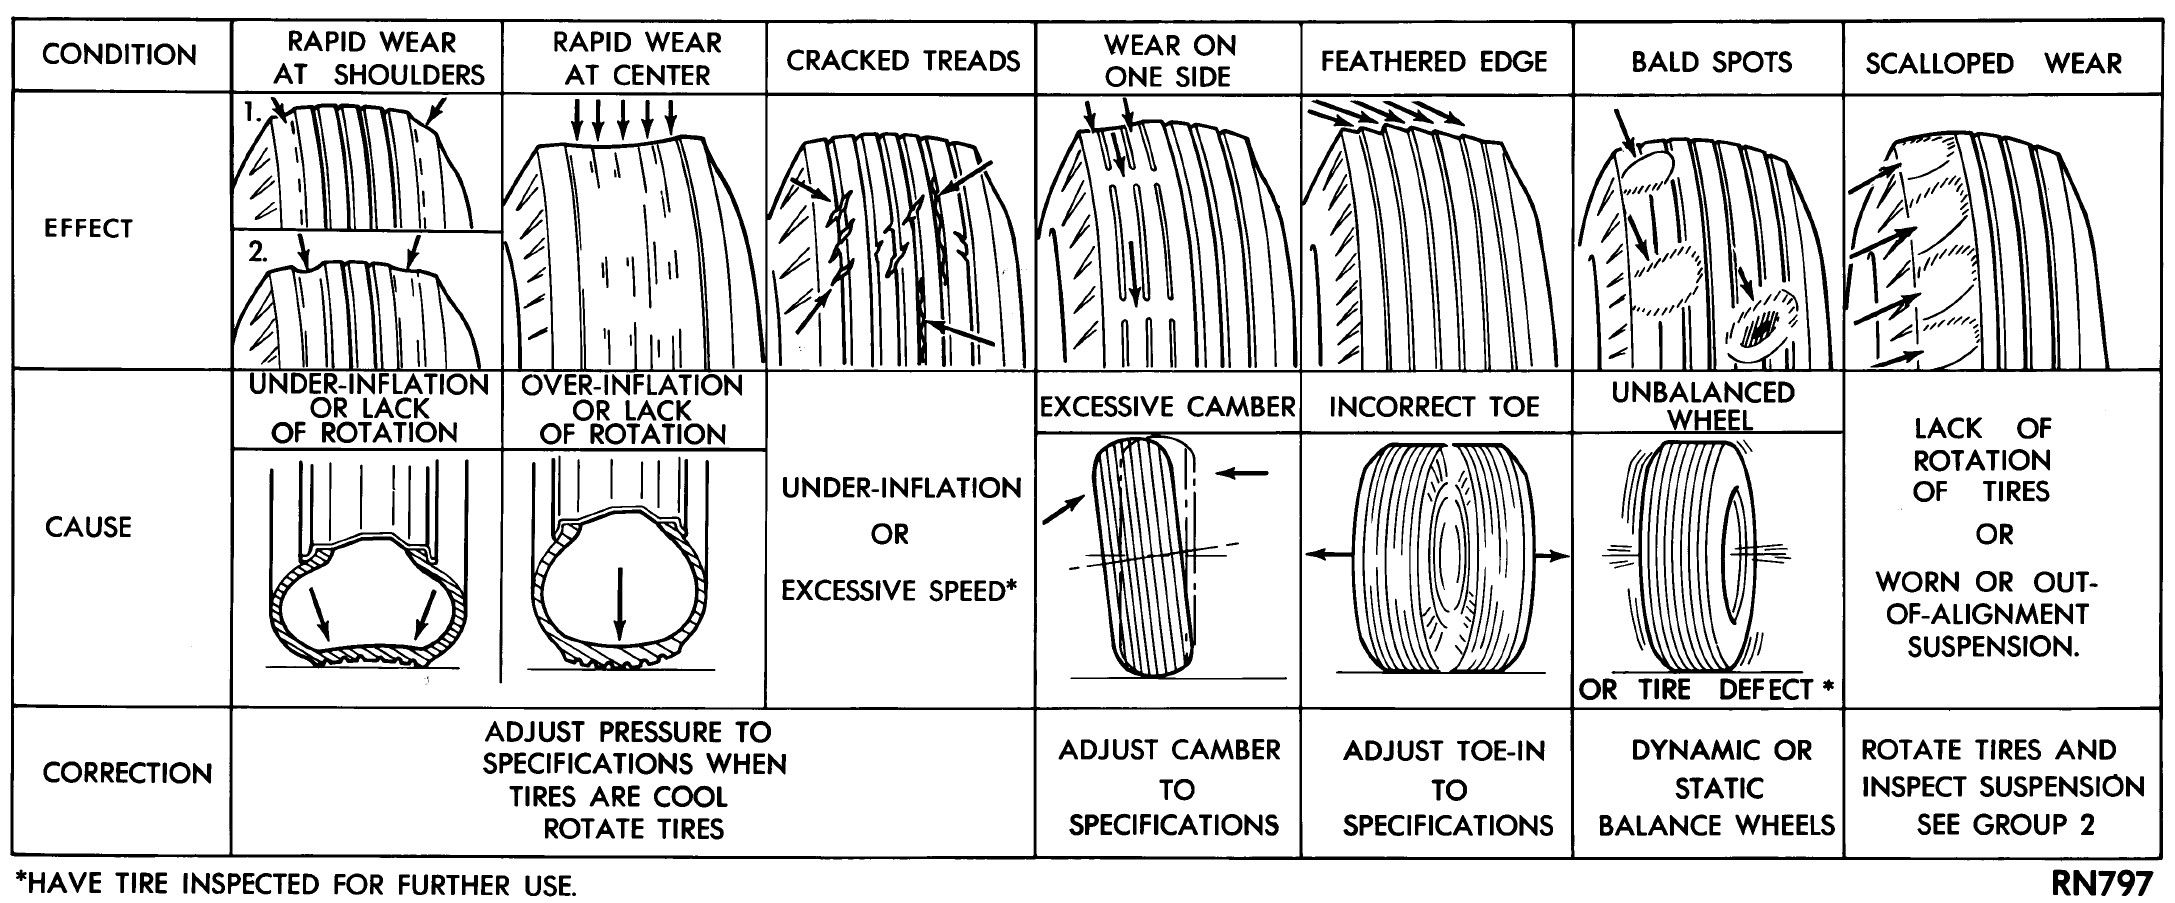 hight resolution of good to know tire wear cause and effect chart with solutions